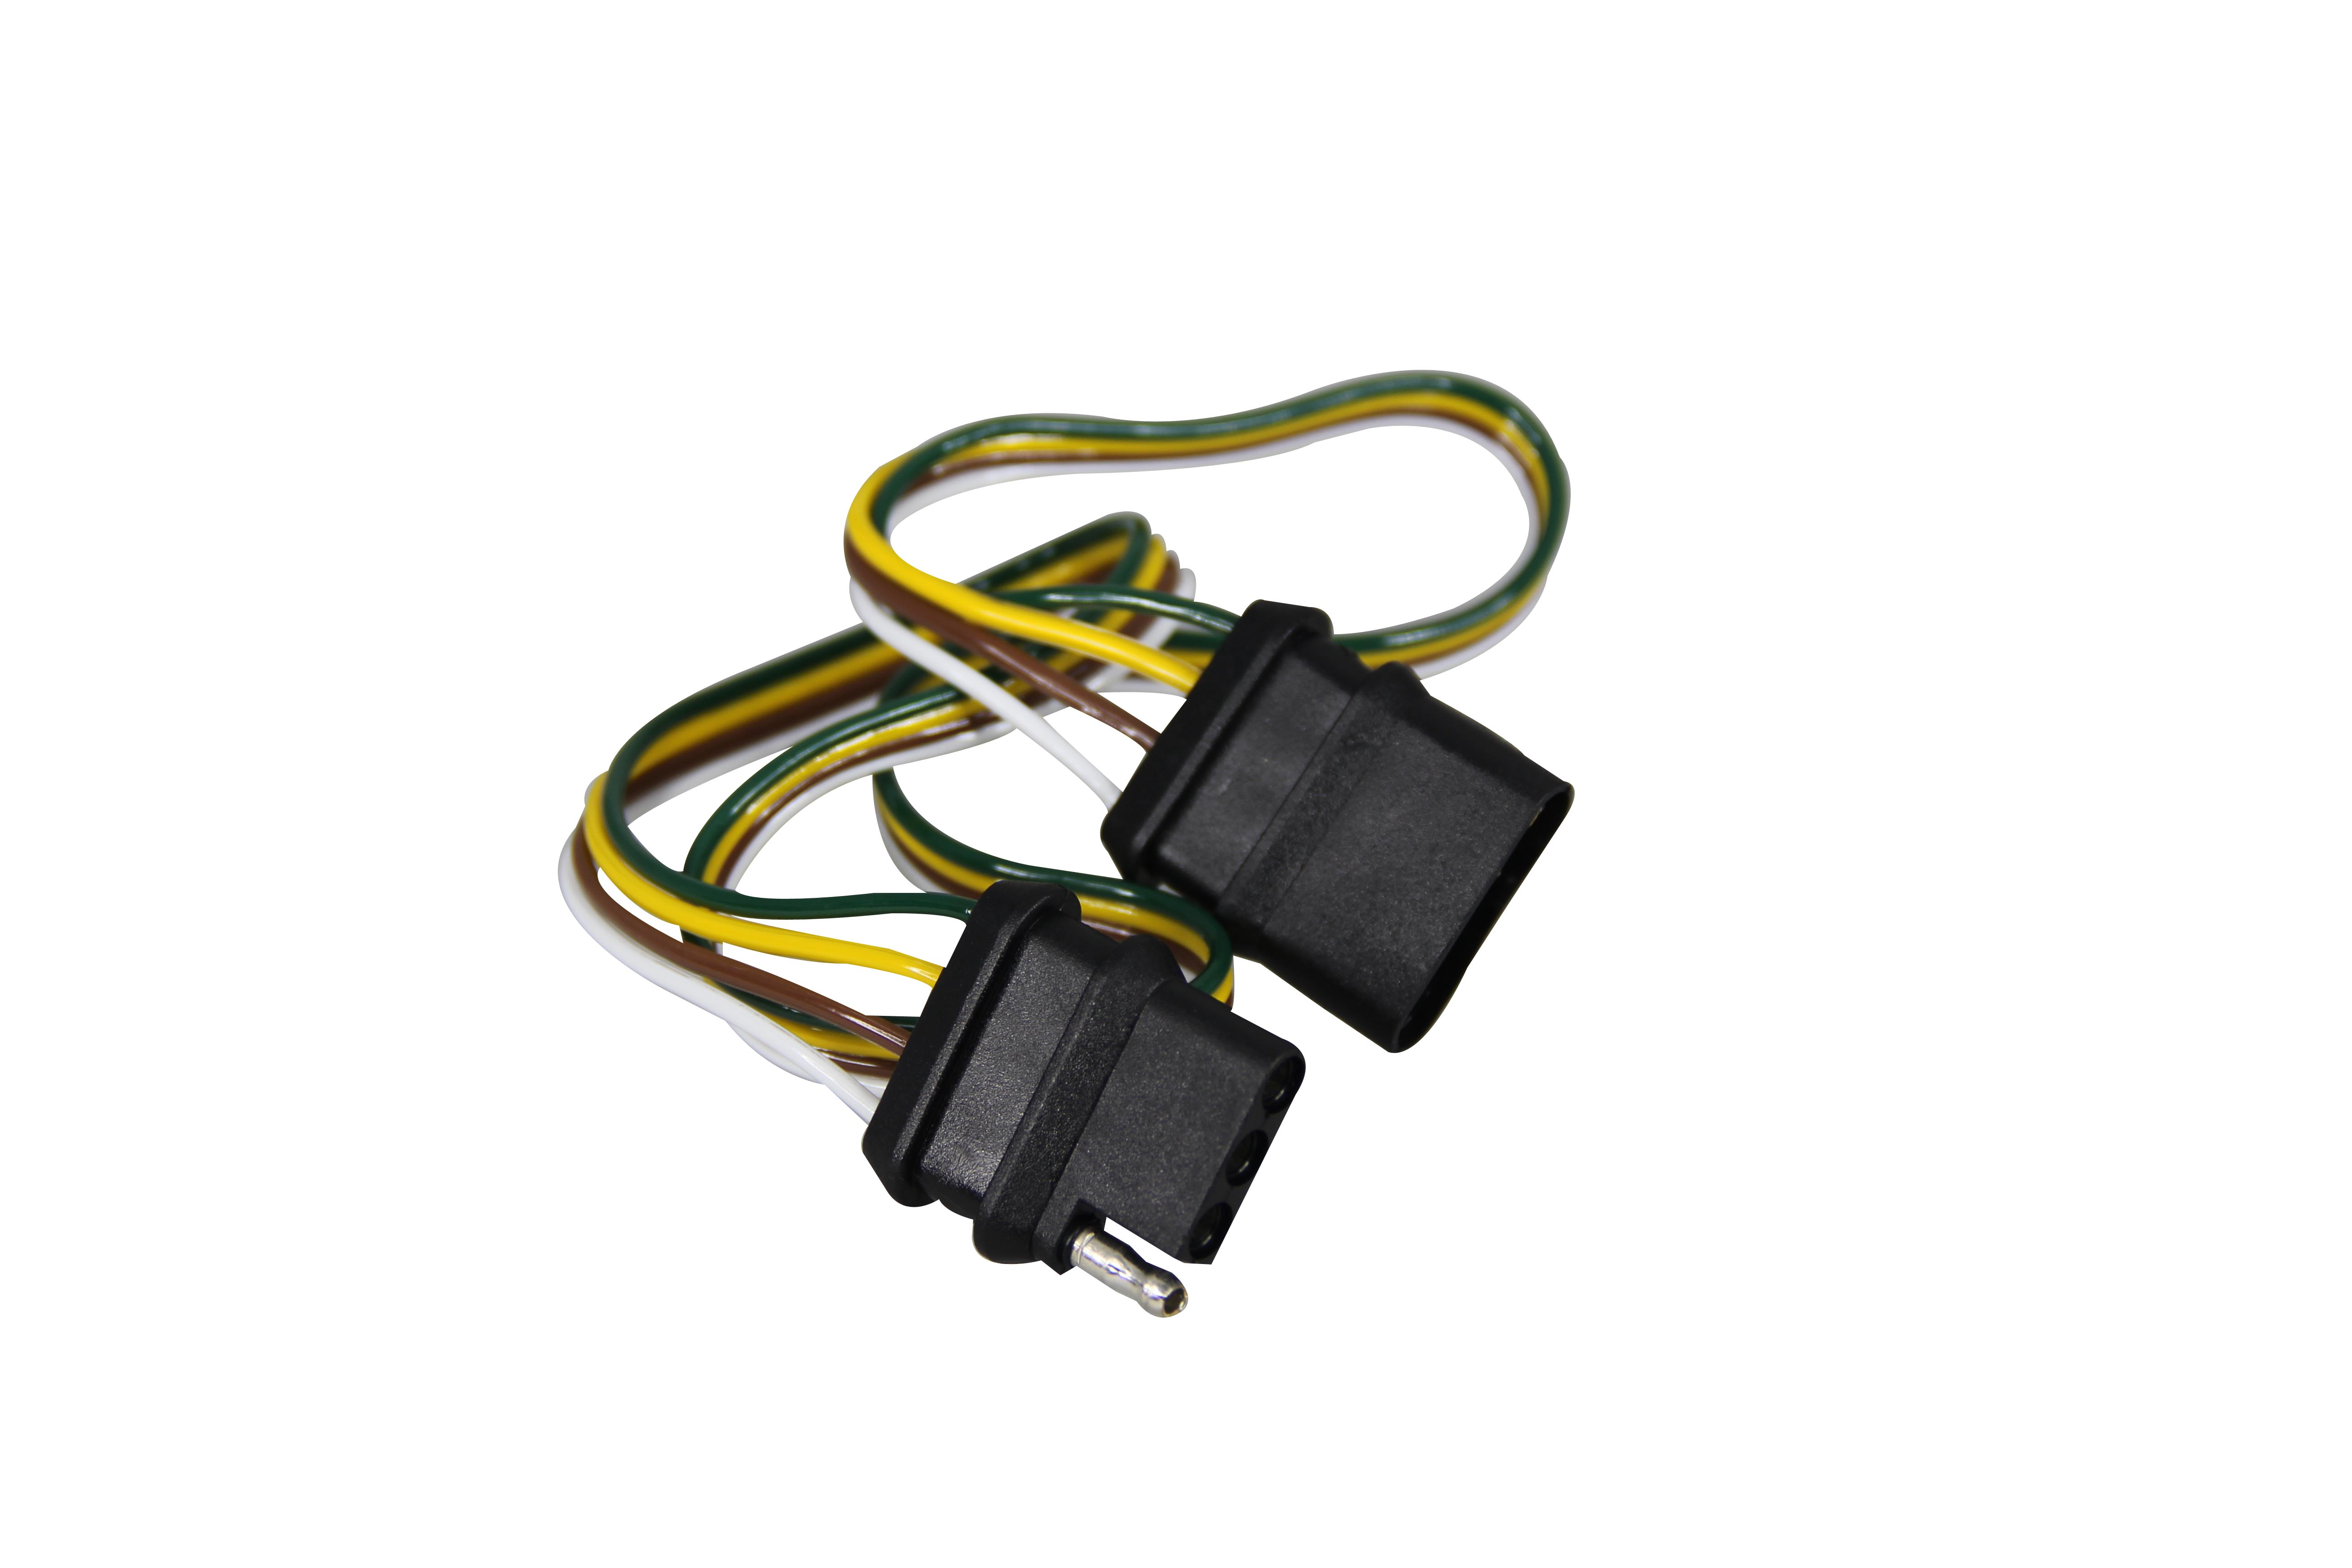 Pactrade Marine Rv Boat 4 Way Trailer Wire Connector 24 Extension Wiring Harness Straps